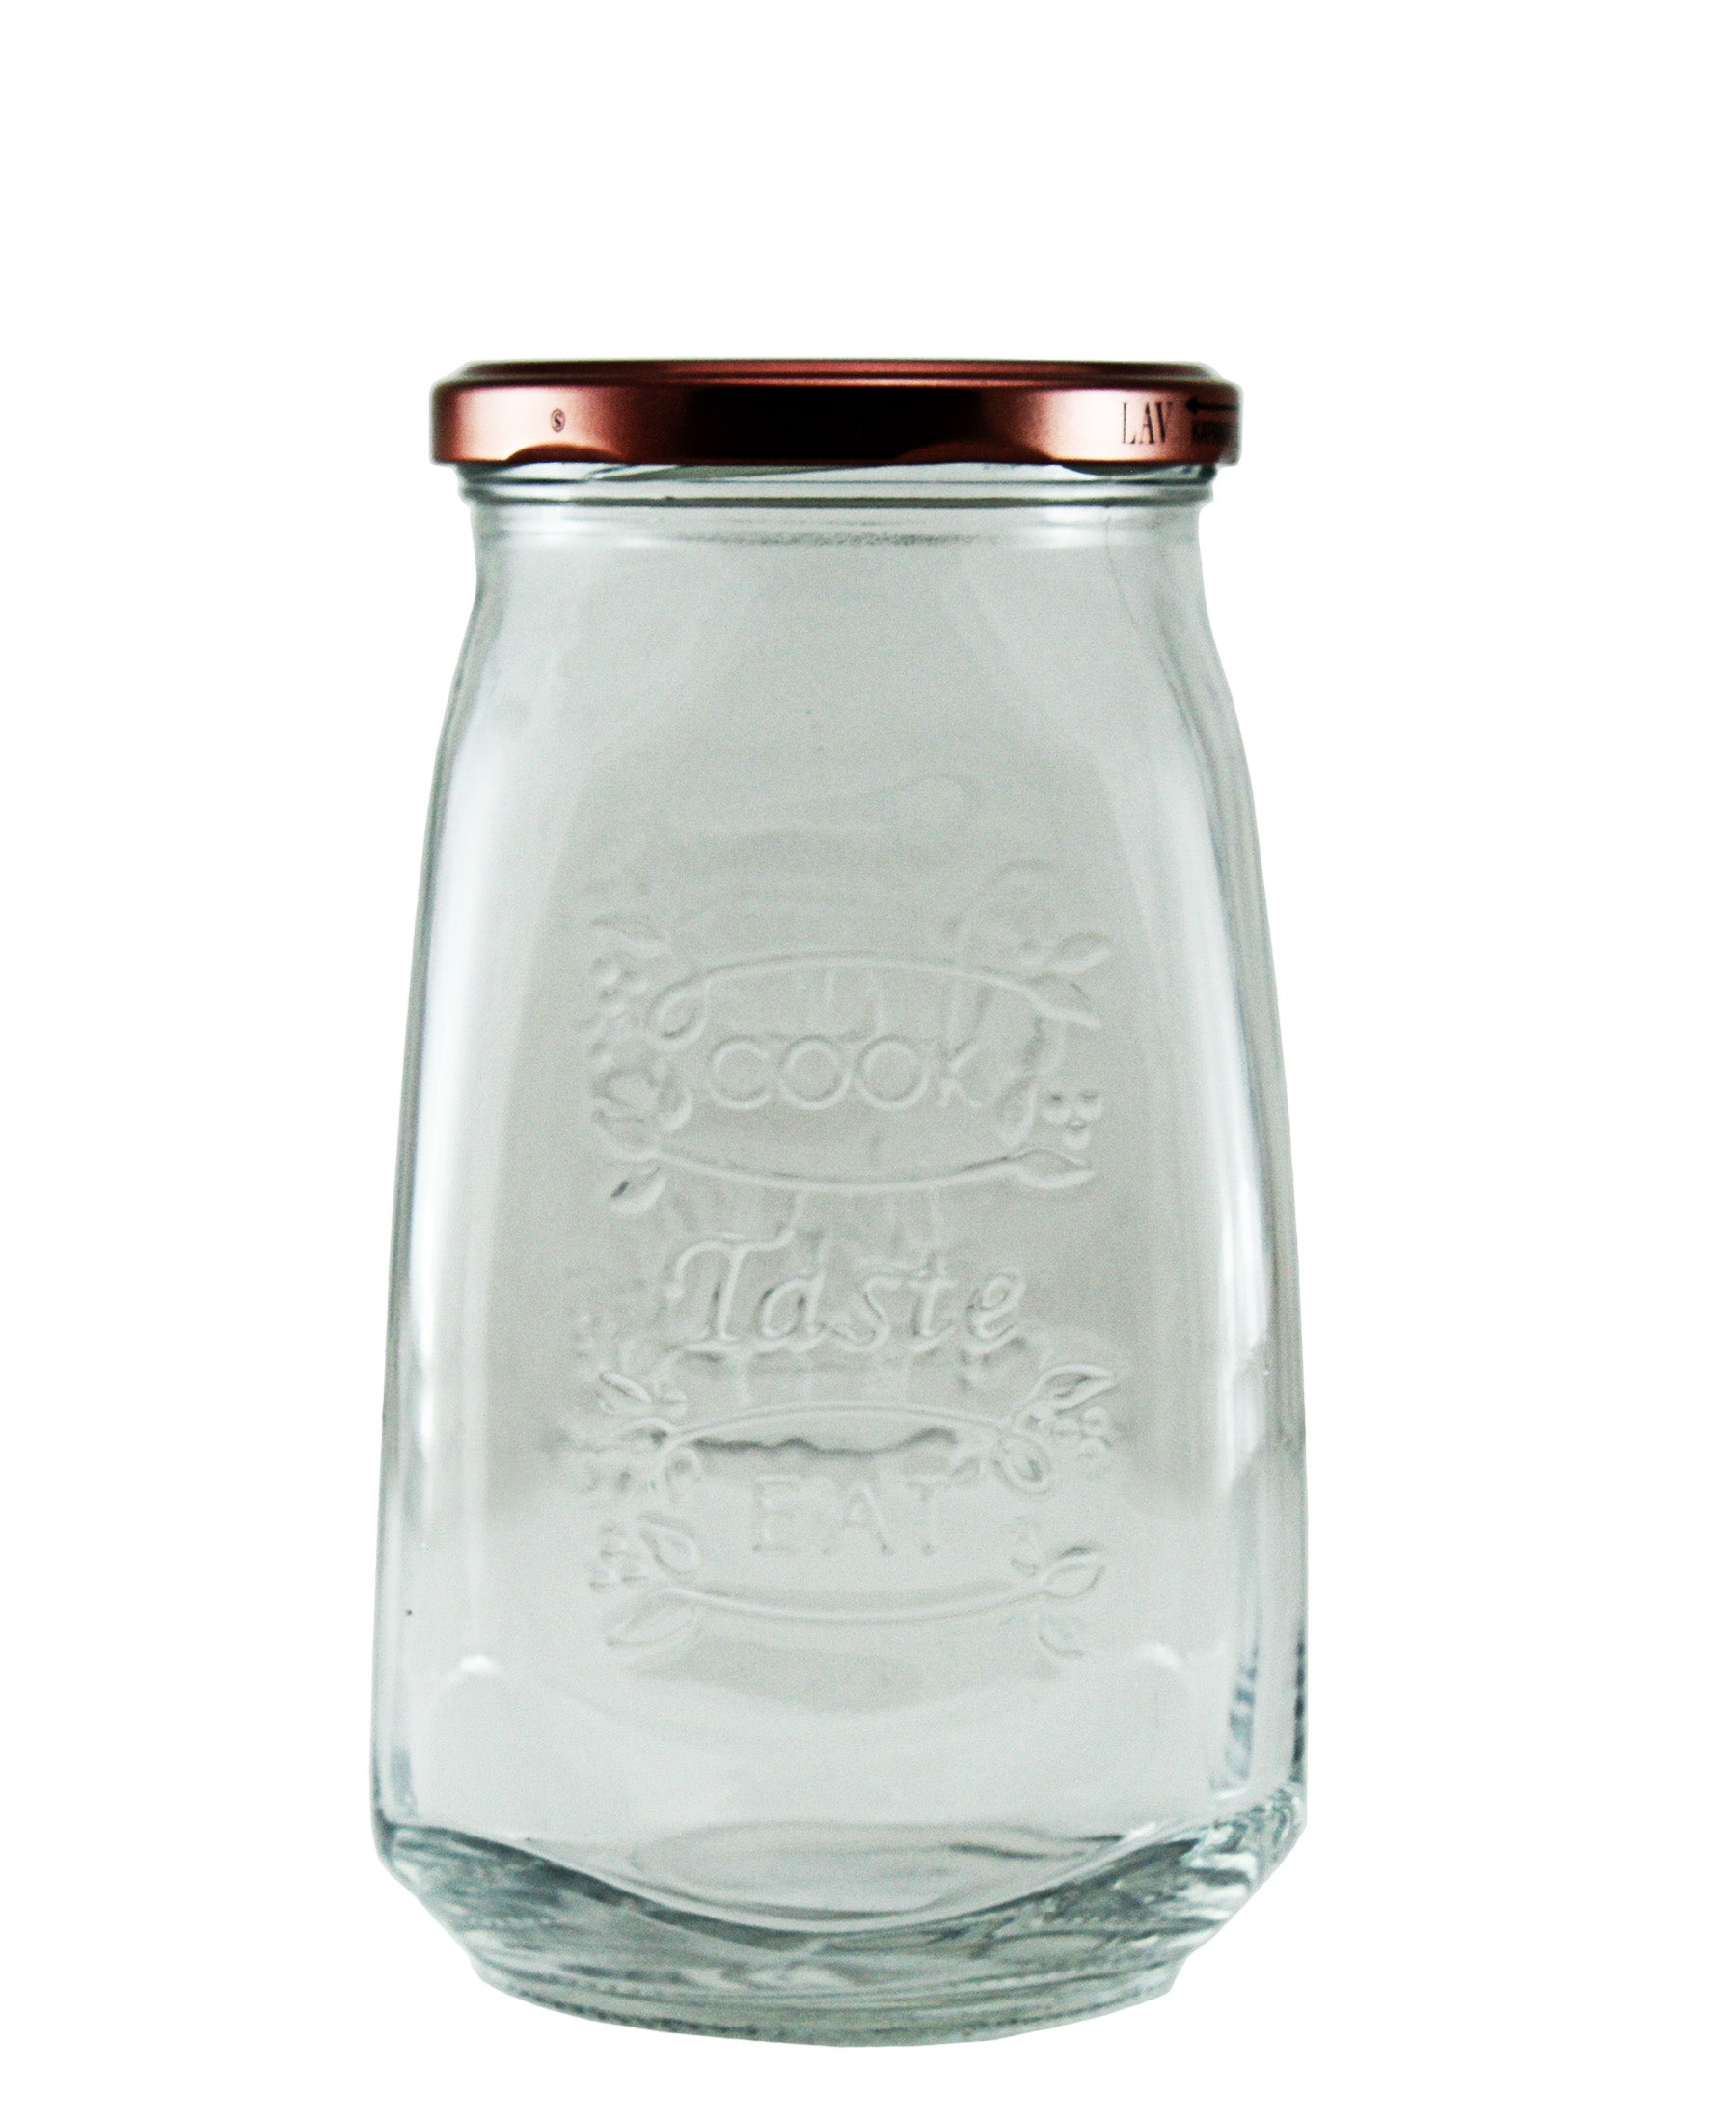 Lucy Cook Taste & Eat Glass Jar - Large